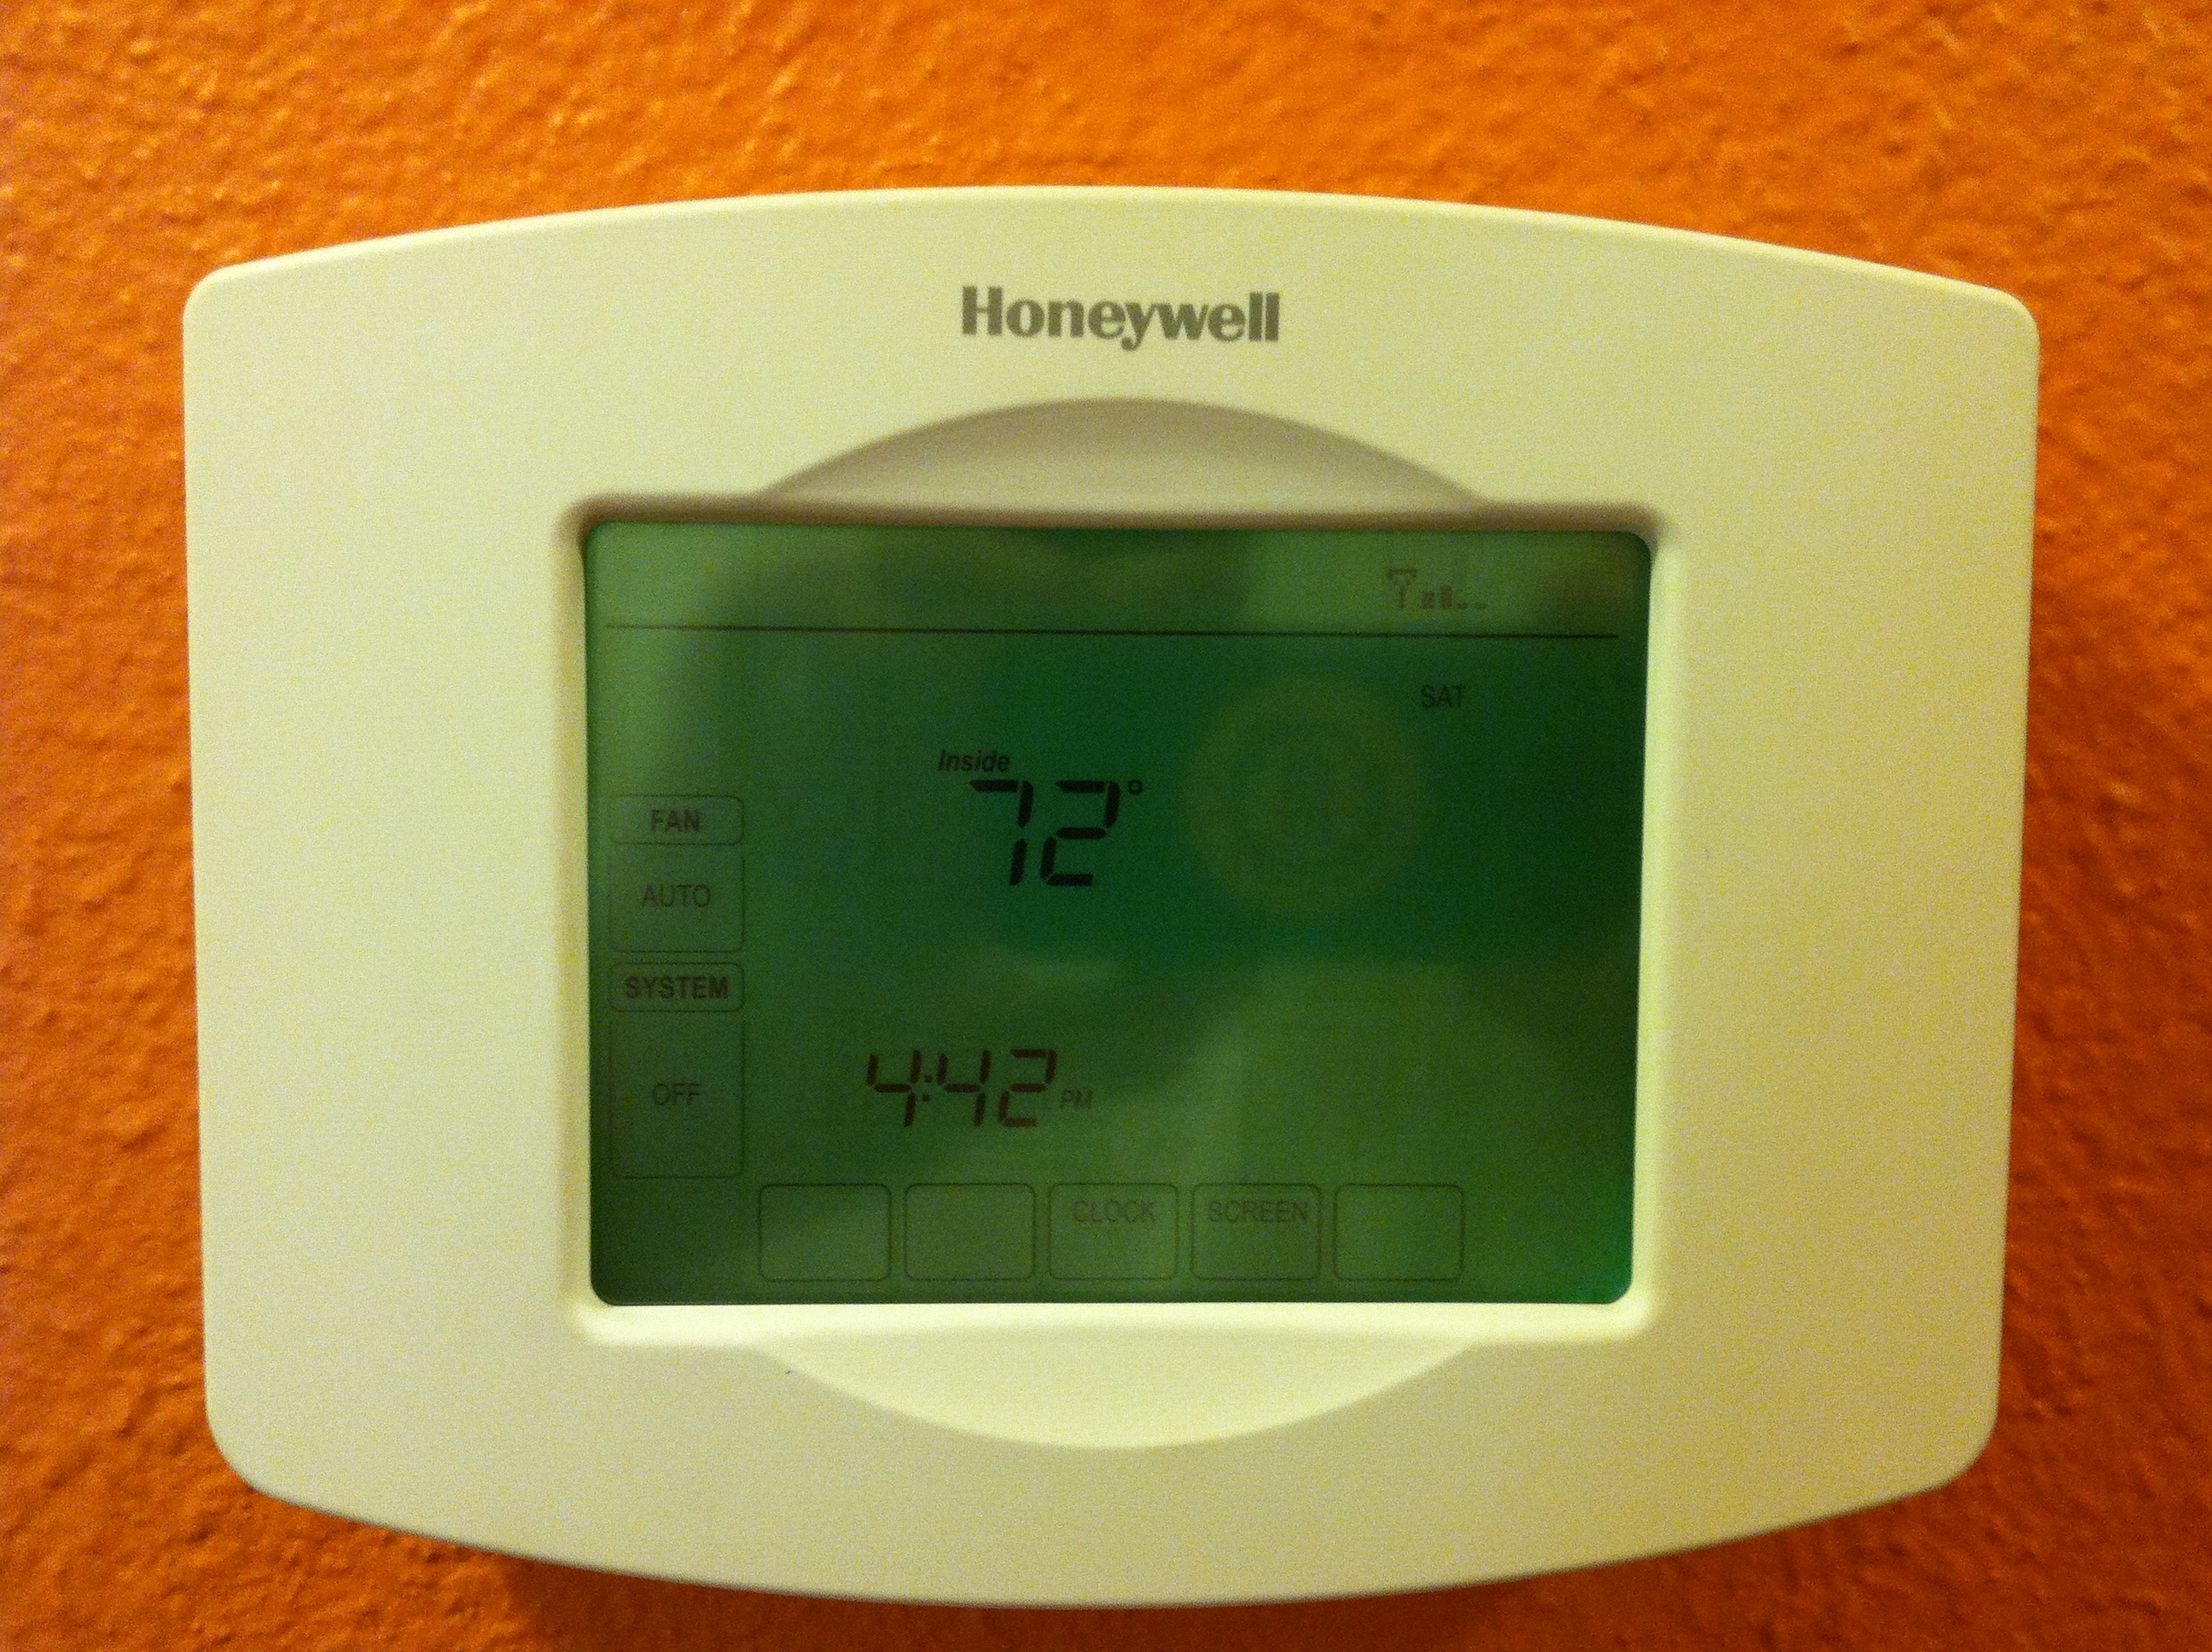 The age-old thermostat dilemma - keep the fan